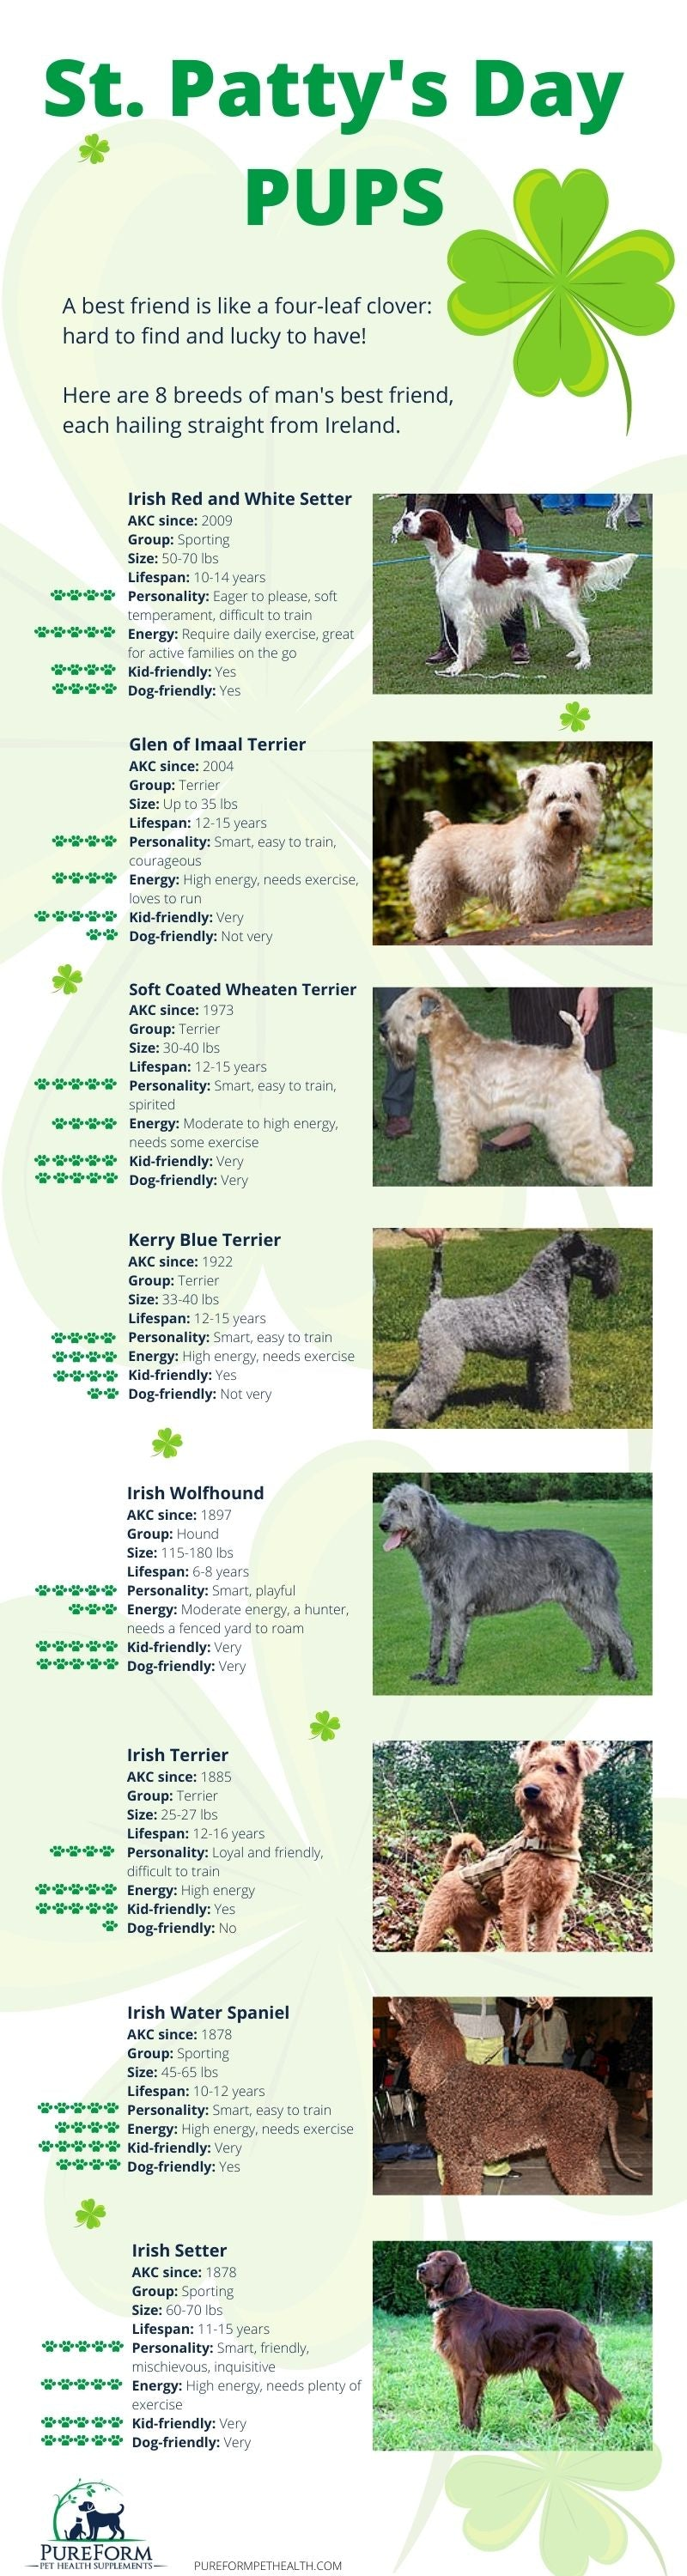 Irish Dog Breeds for St. Patrick's Day 2021 (Infographic)